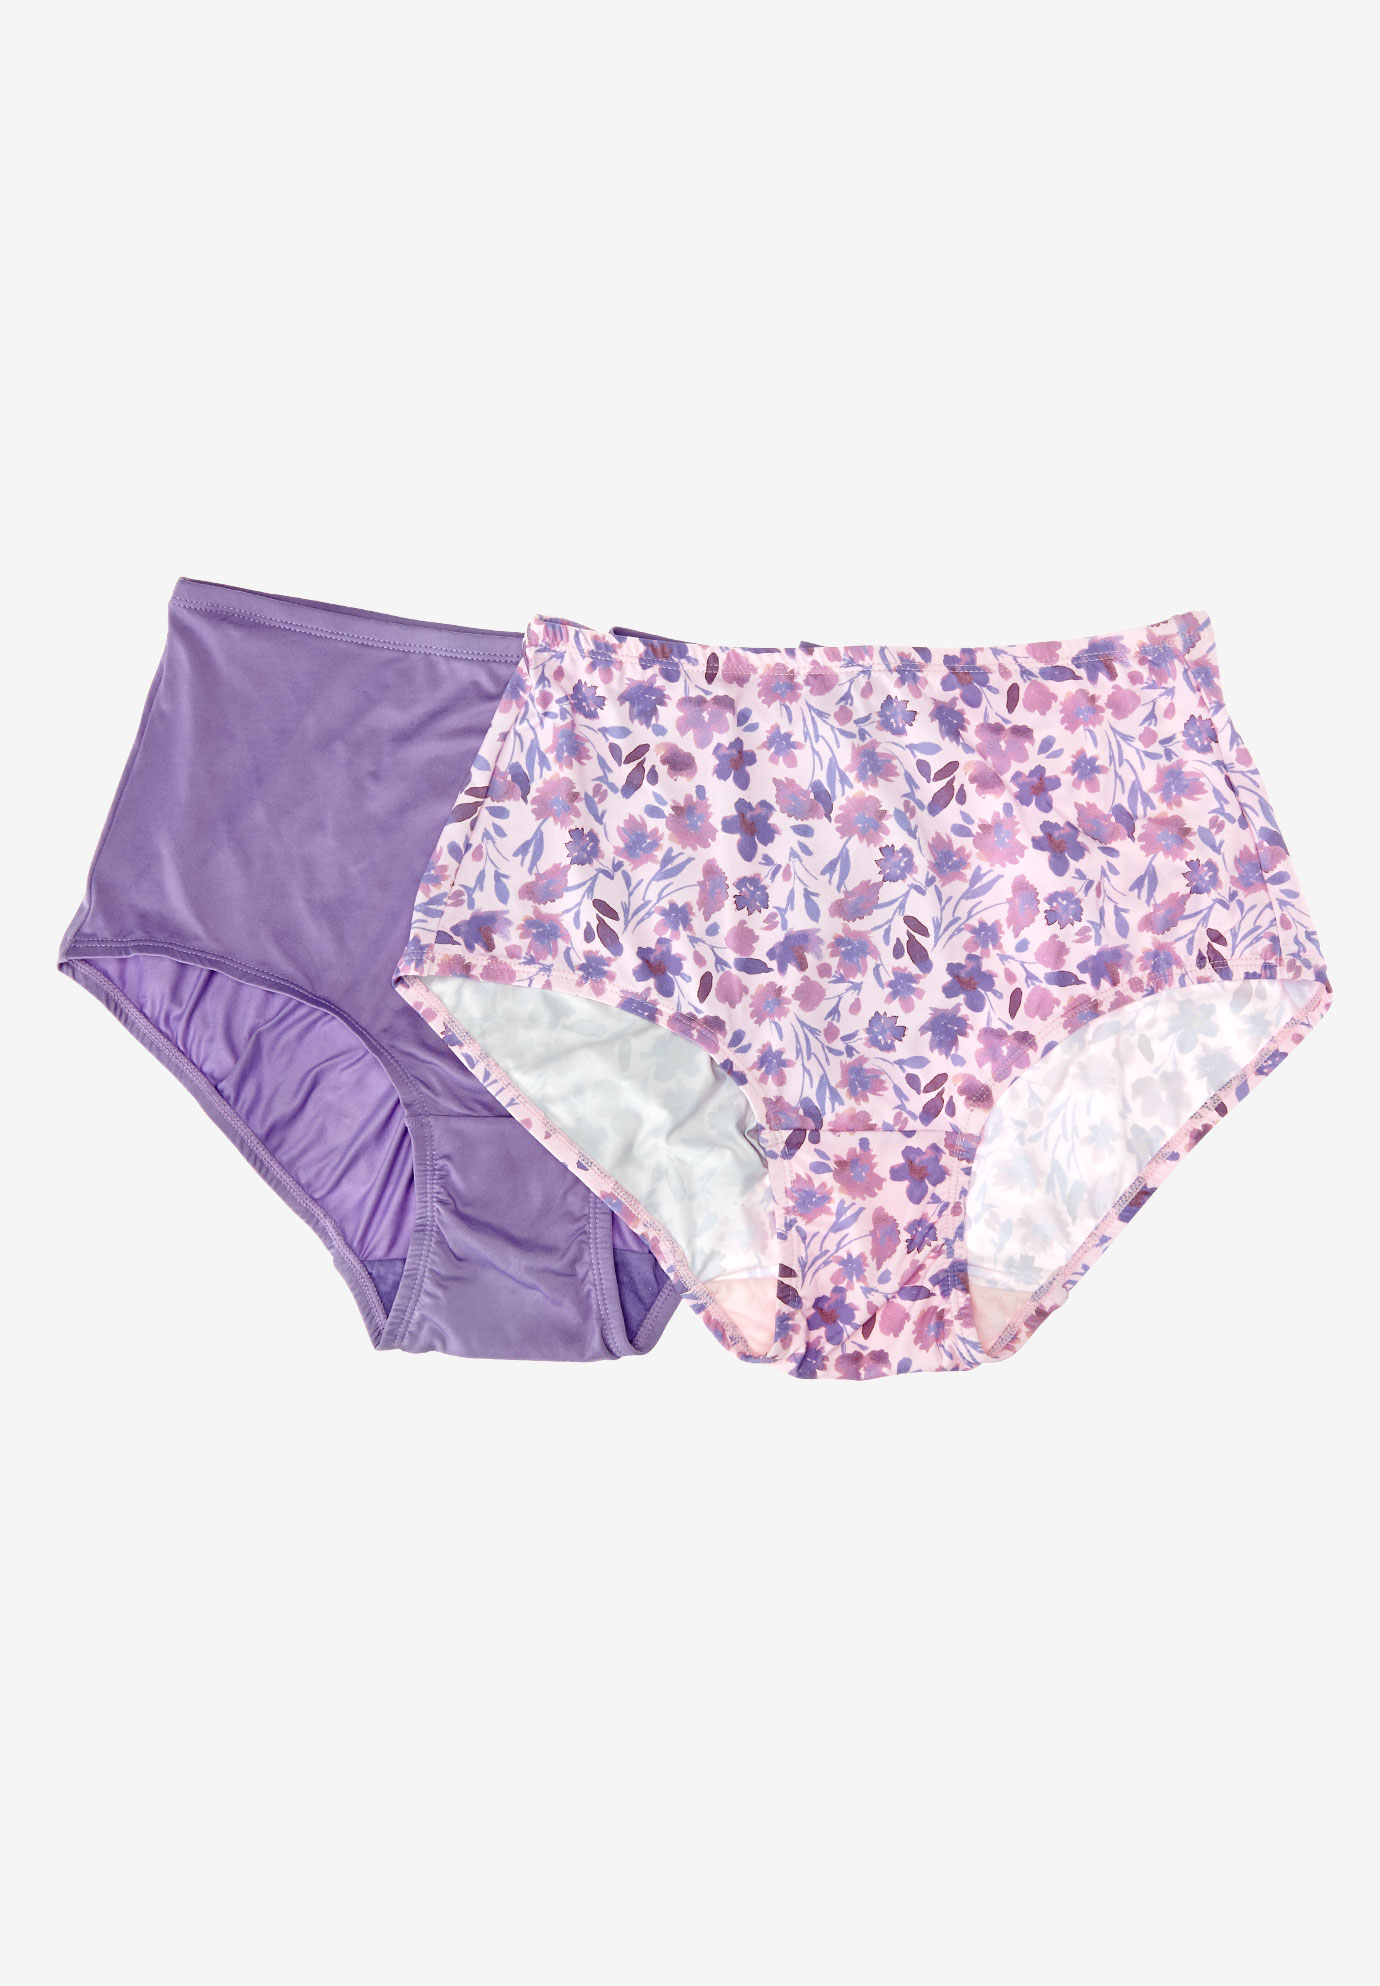 2-Pack Cooling Briefs by Comfort Choice®, PINK BLOOM PACK, hi-res